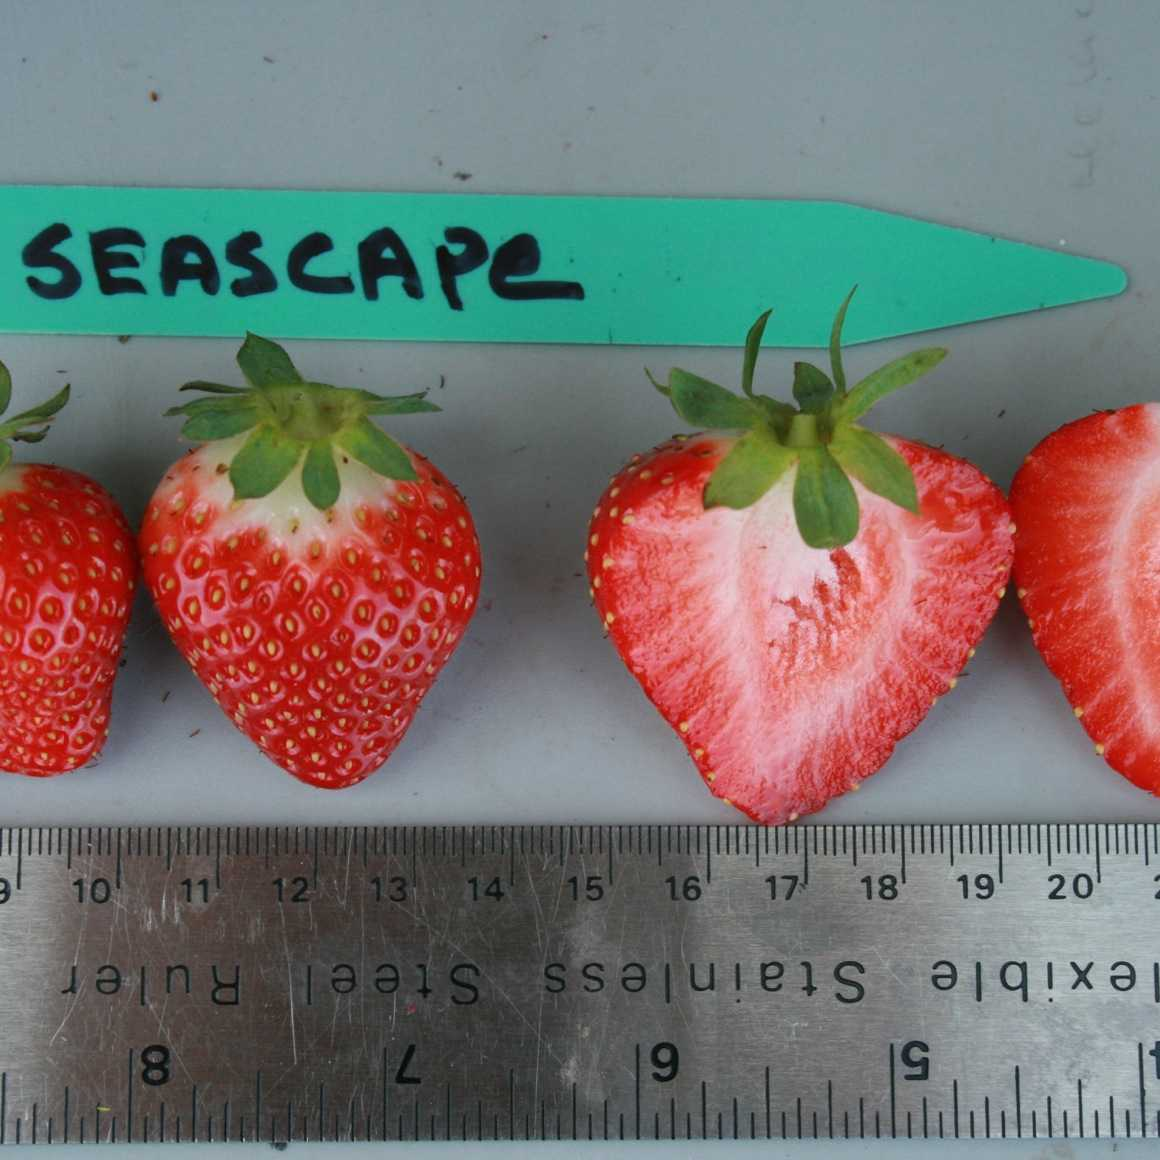 Red Seascape strawberries